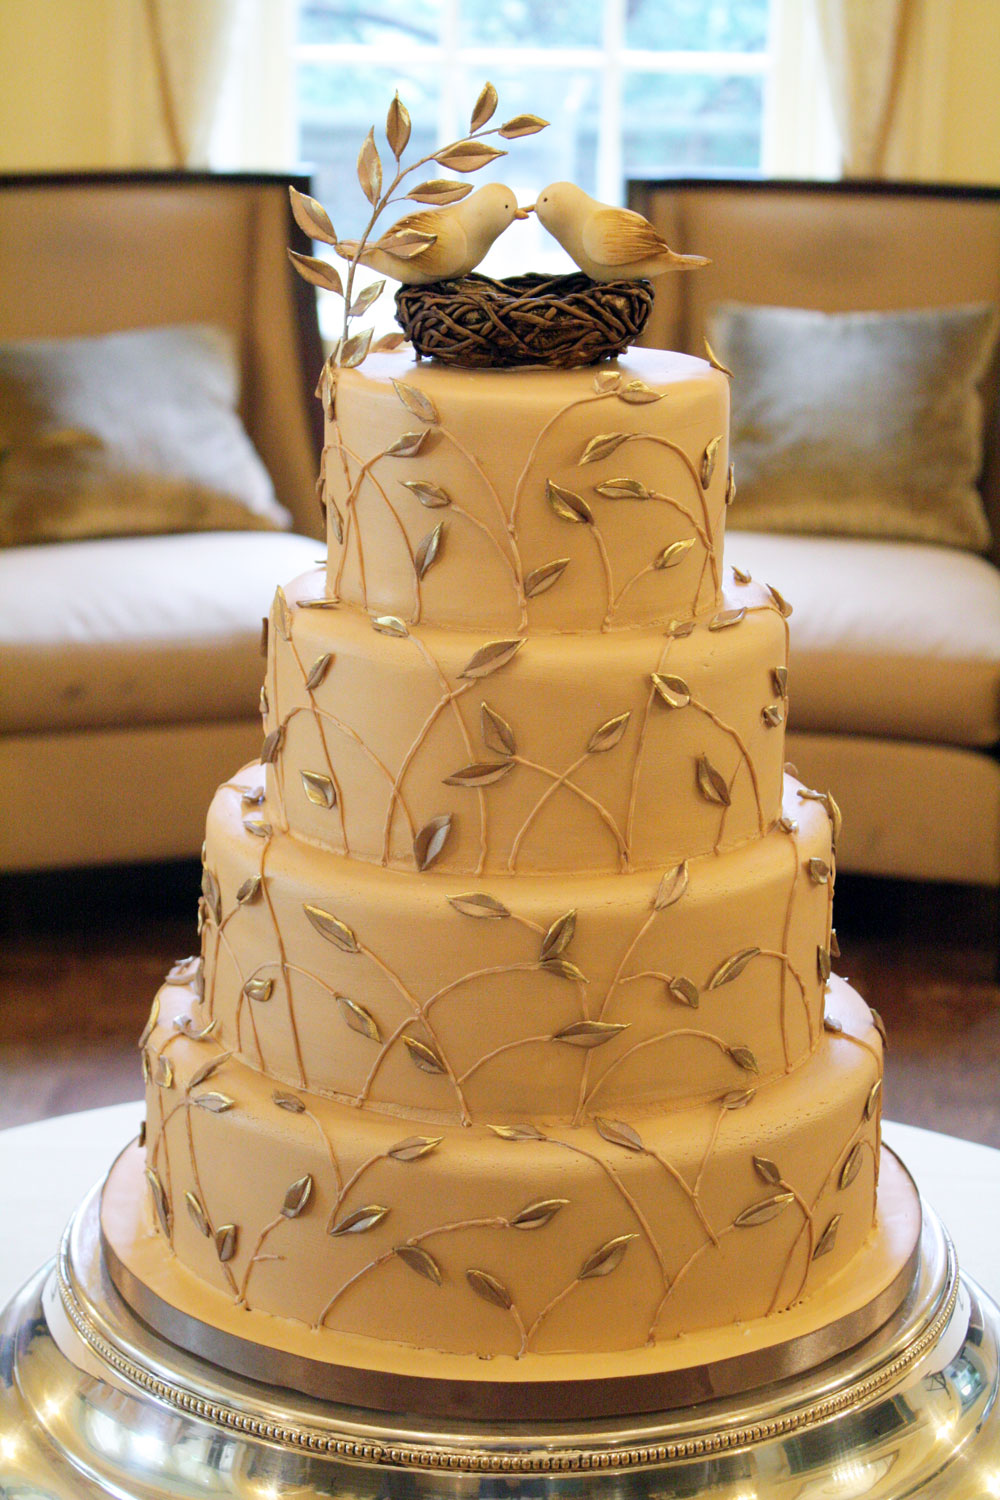 wedding cake with birds let them eat cake at your wedding birds top this cake 26824